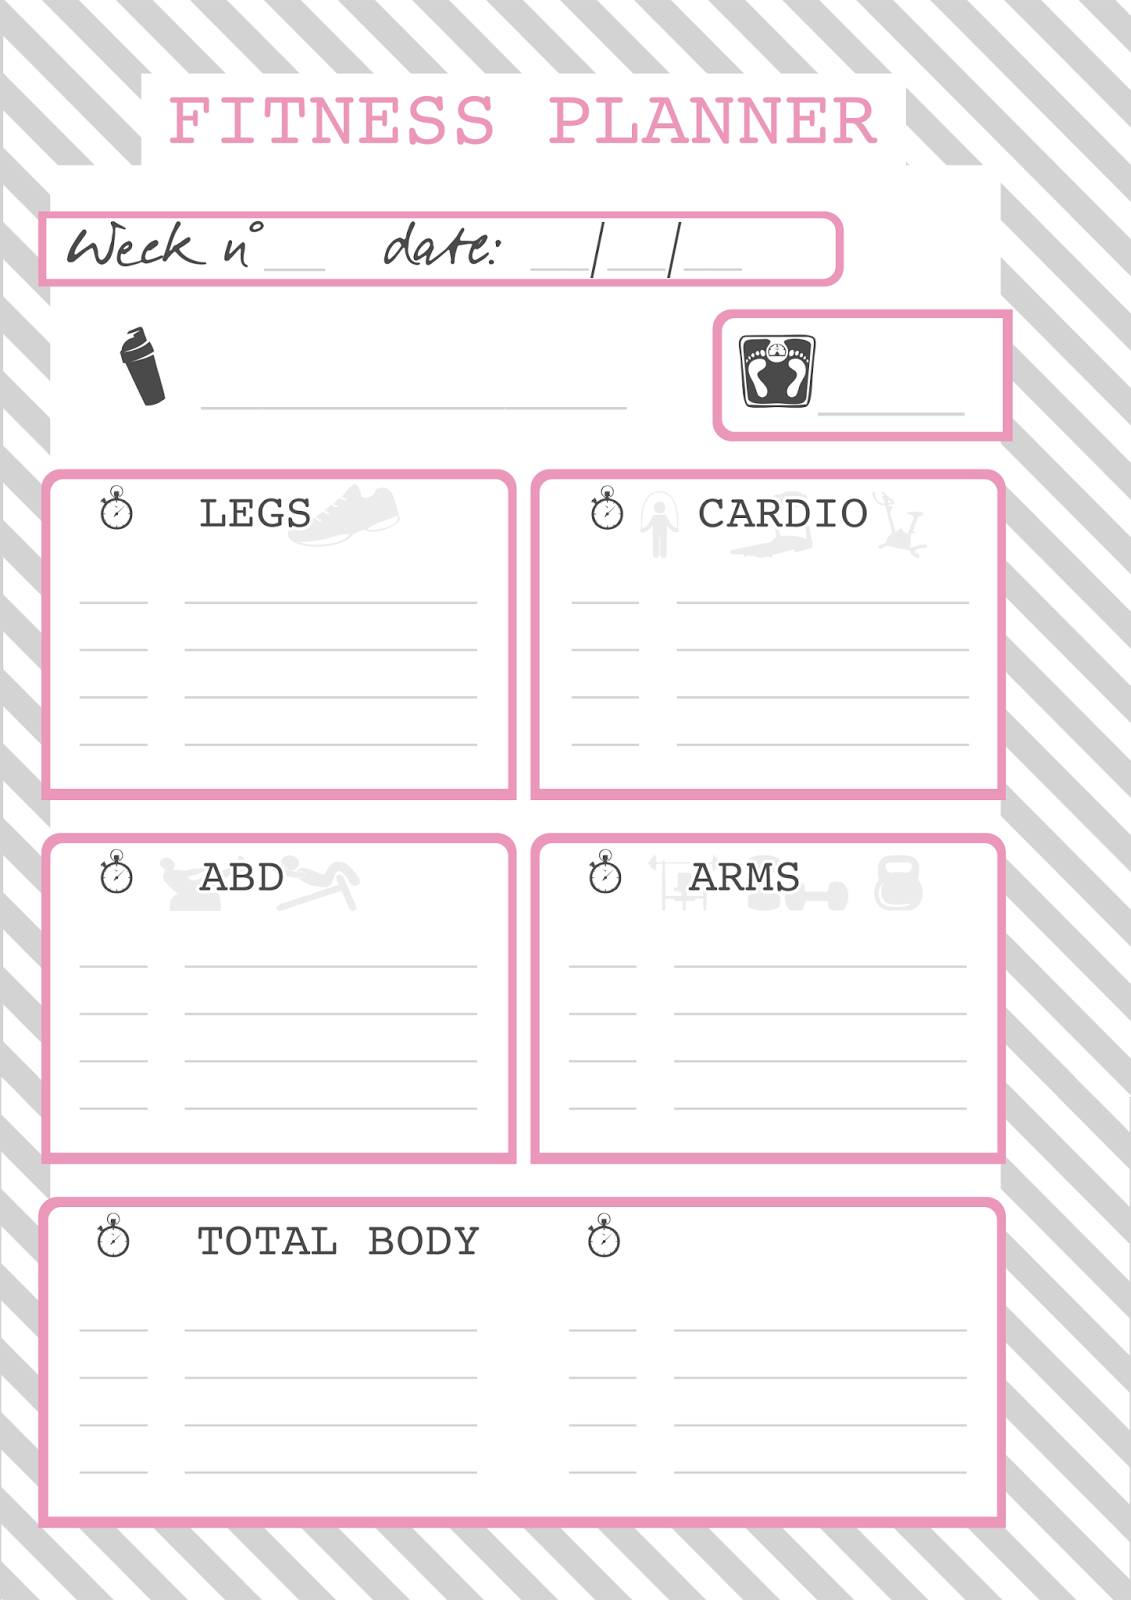 Estremamente JOURNAL & DIARY | Fitness schedule | Sabrina C JT11